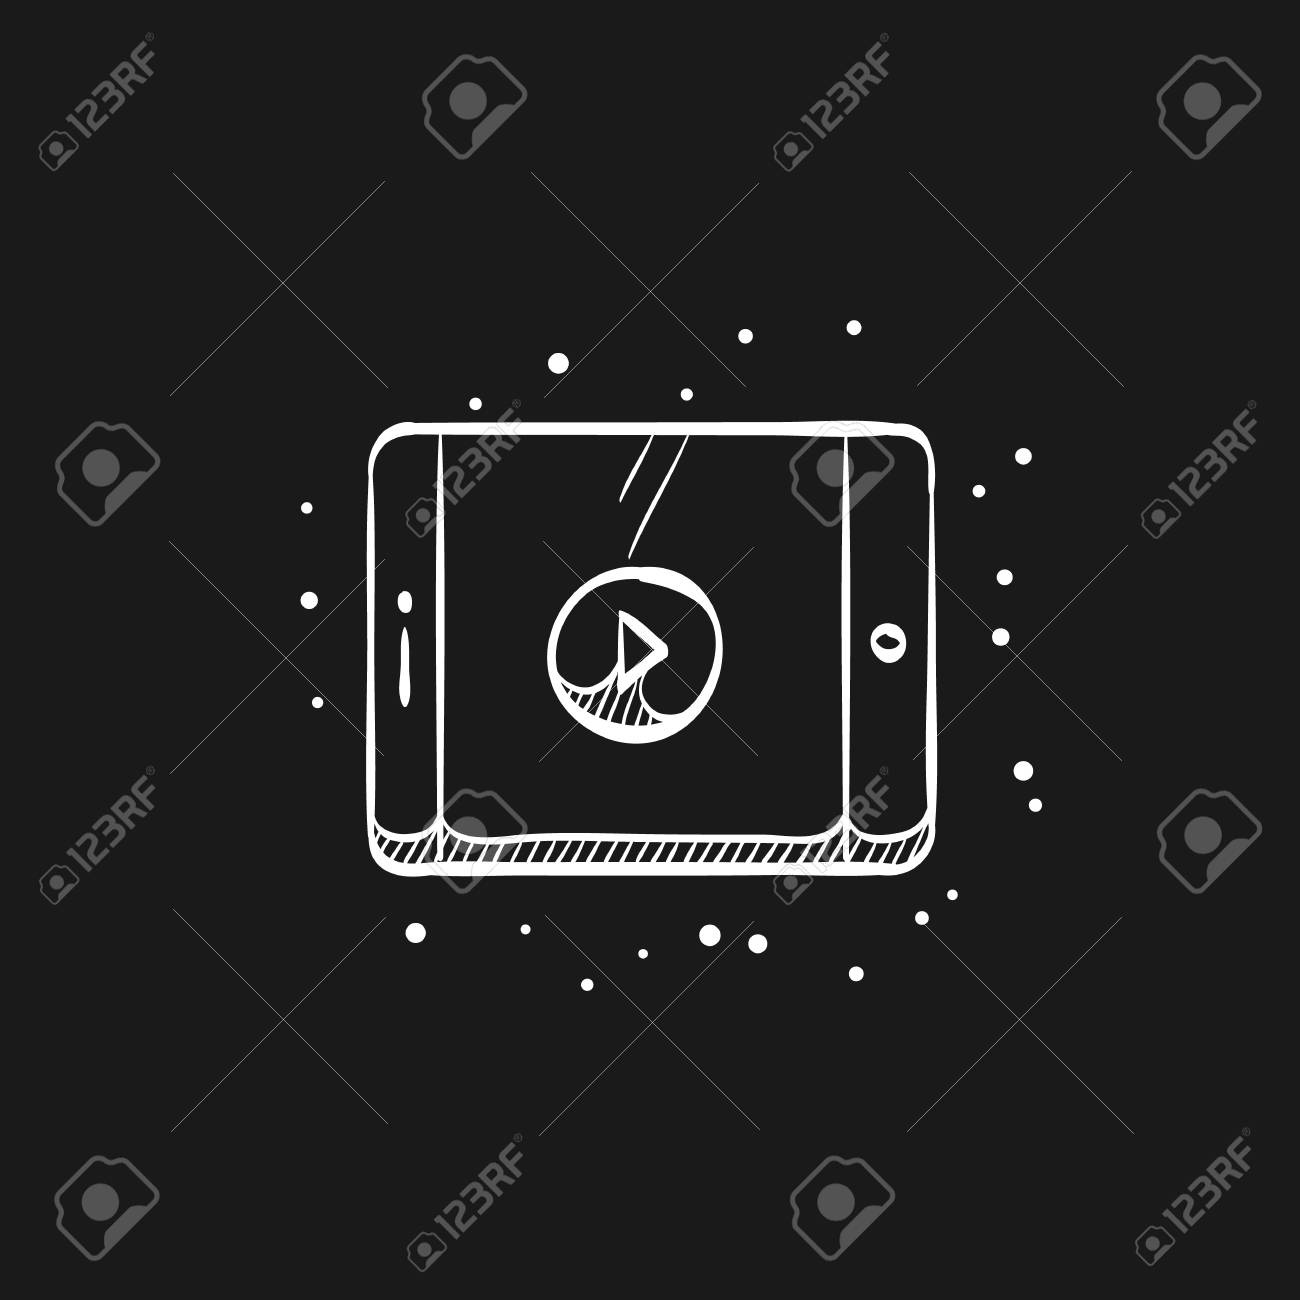 Movie play symbol icon in doodle sketch lines  Entertainment